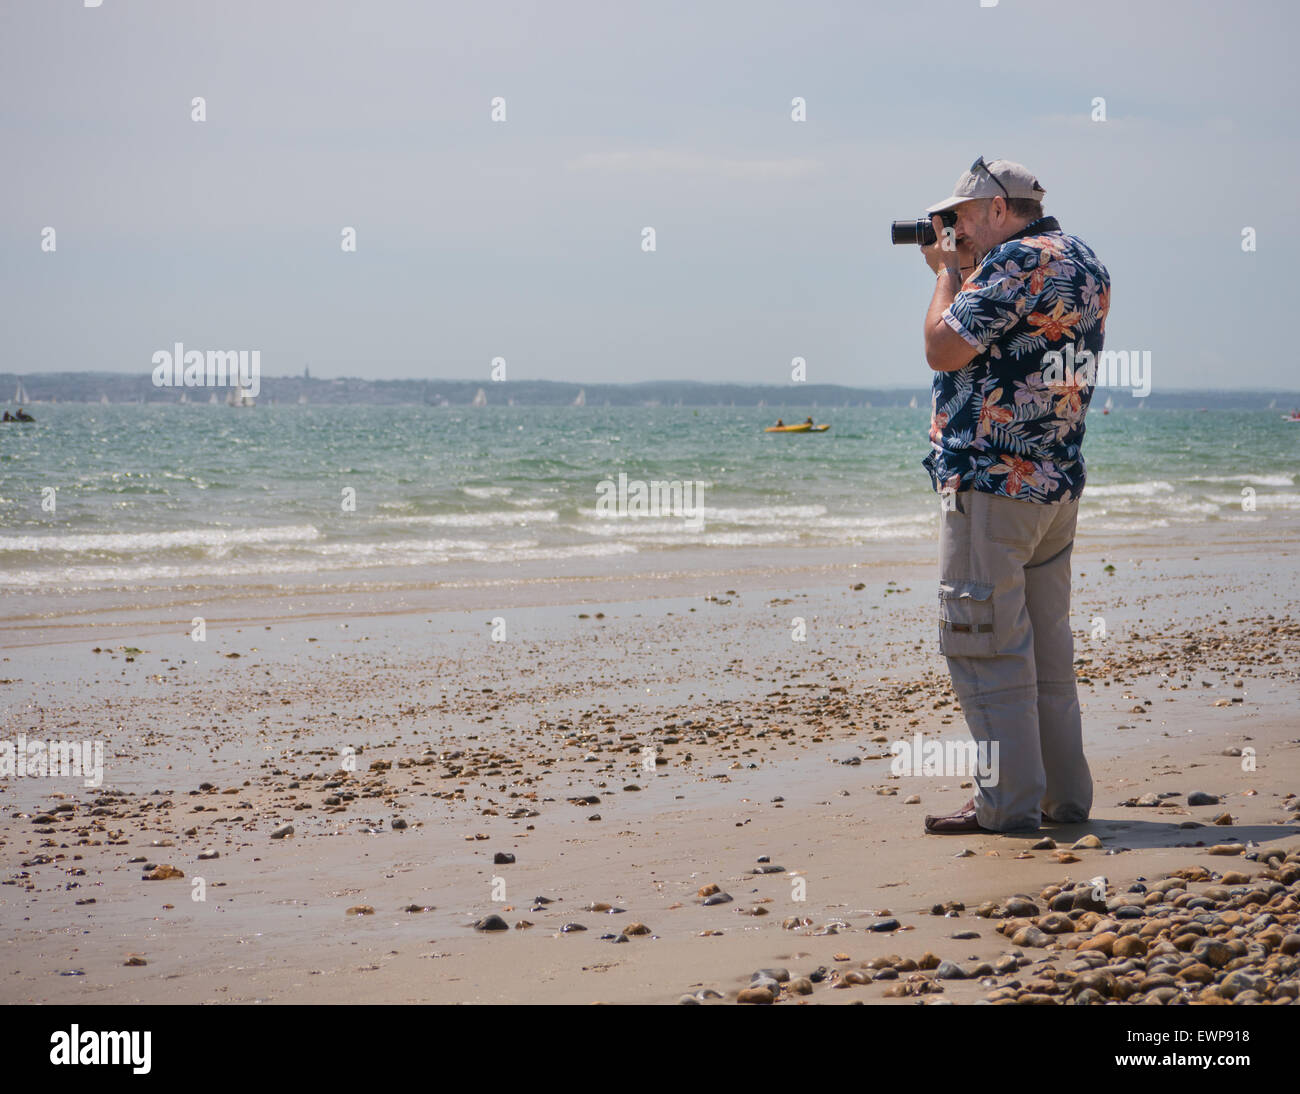 0220da04068b A photographer in a Hawaiian shirt take photographs on the beach - Stock  Image